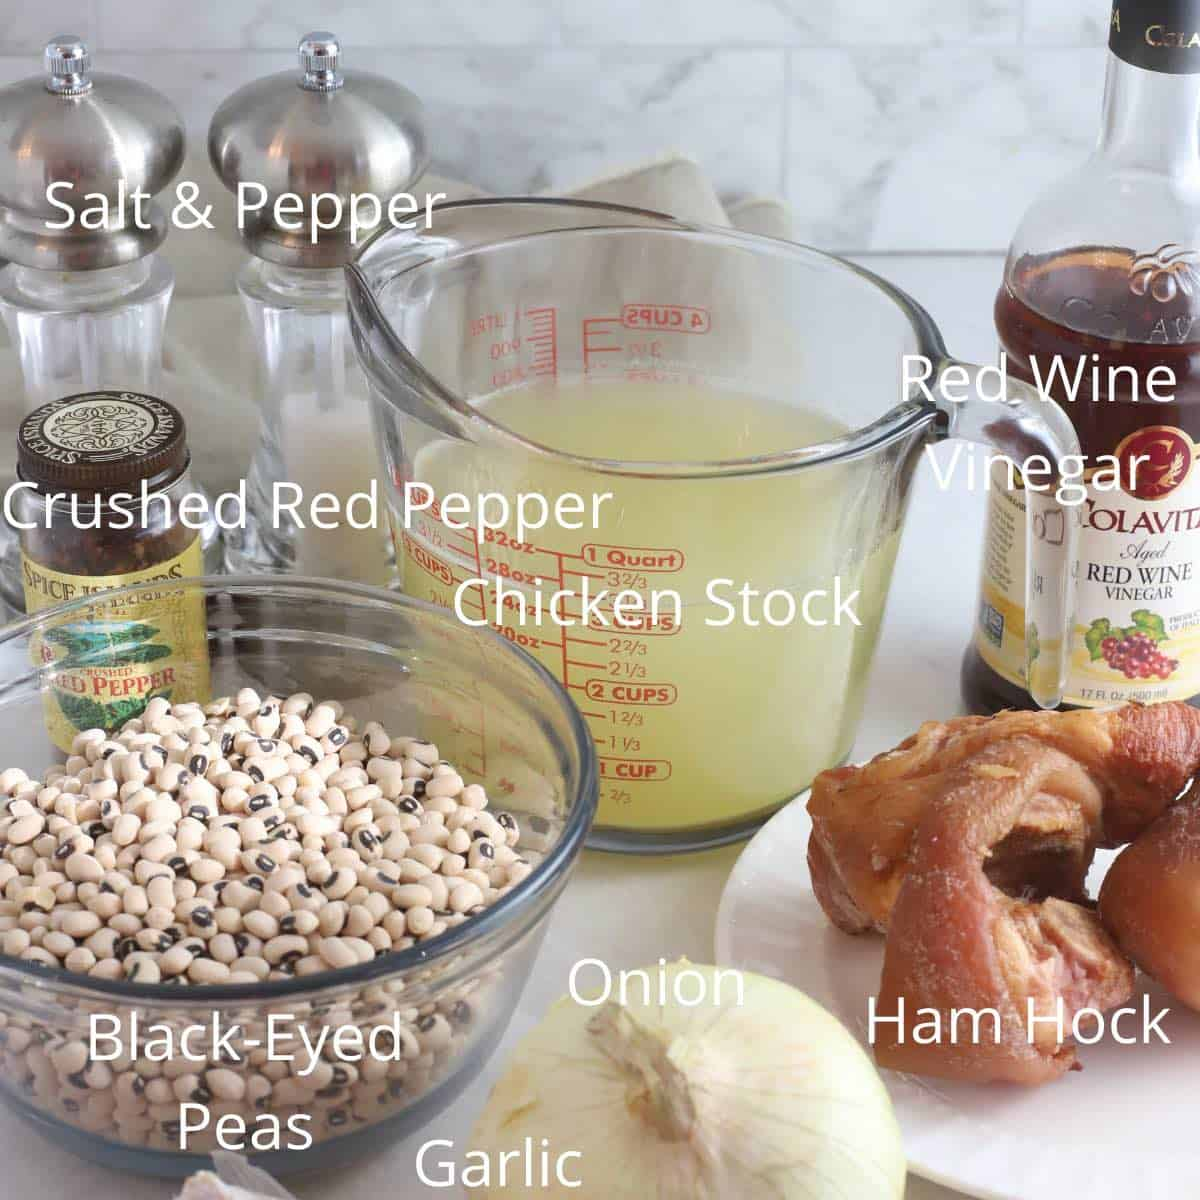 Ingredients to make black-eyed peas including dried peas, chicken stock and a ham hock.